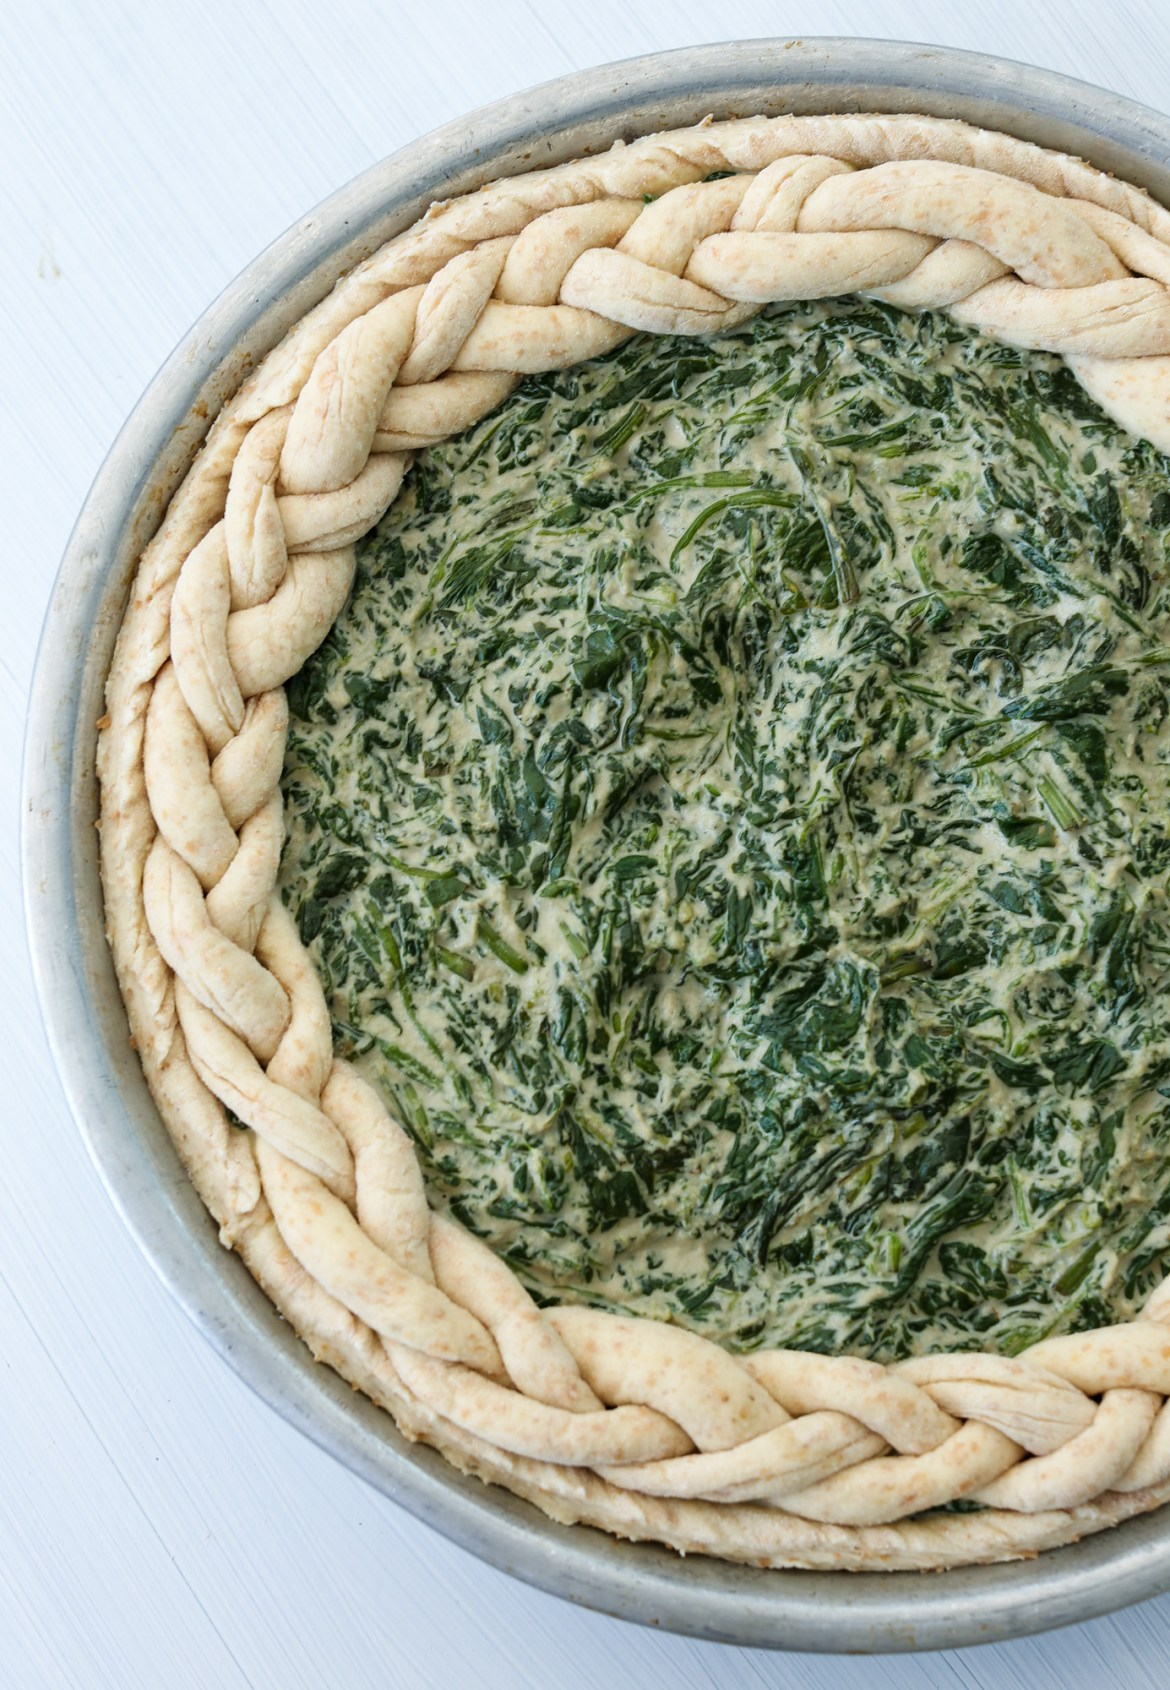 spinach pie ready for the oven